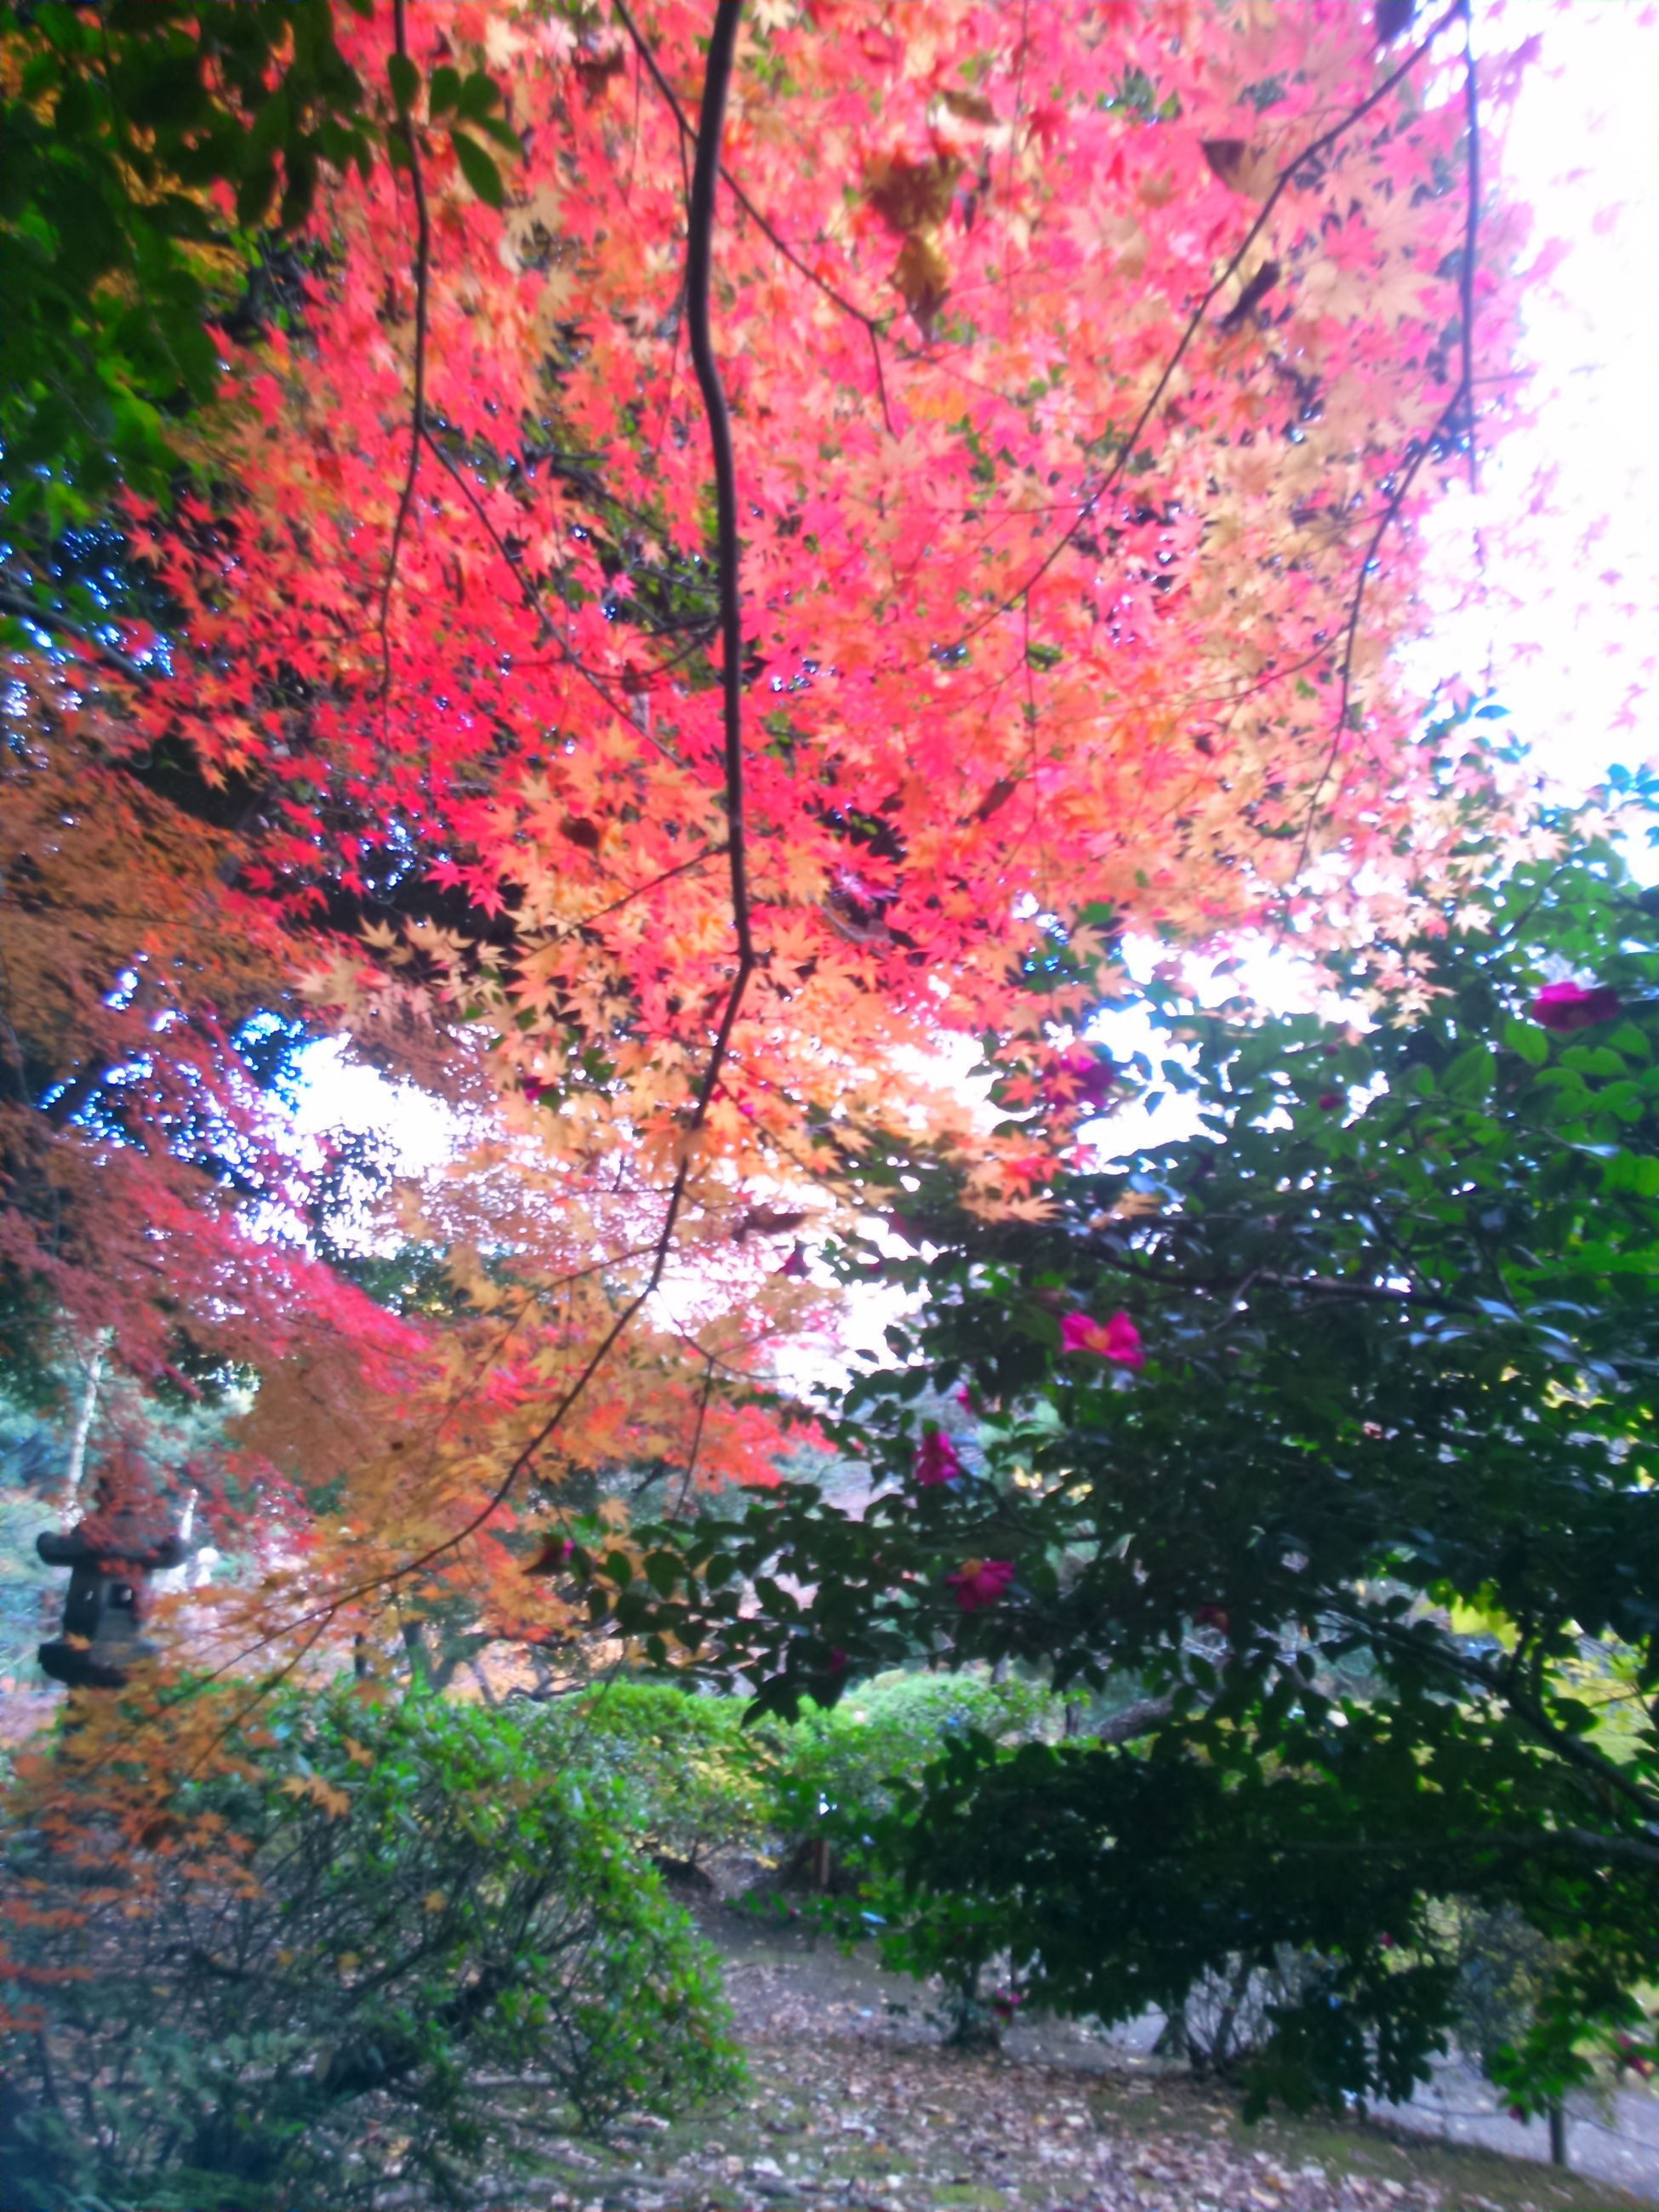 tree, nature, growth, no people, beauty in nature, outdoors, branch, leaf, multi colored, day, scenics, water, sky, close-up